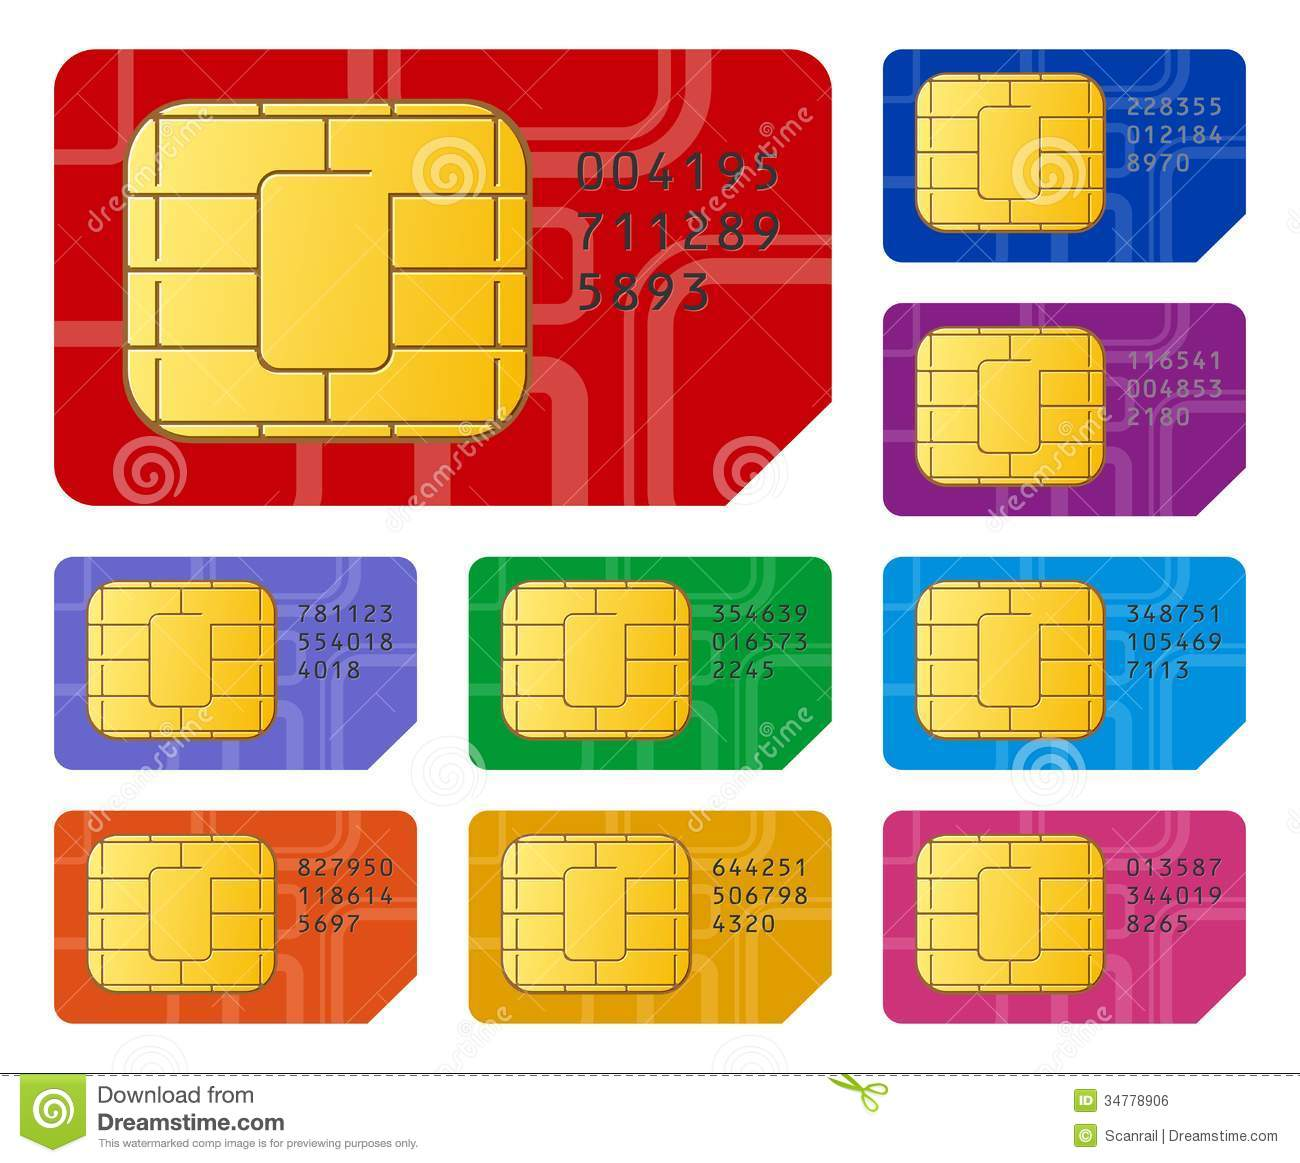 SIM cards stock vector. Illustration of chip, icon, cellphone - 34778906